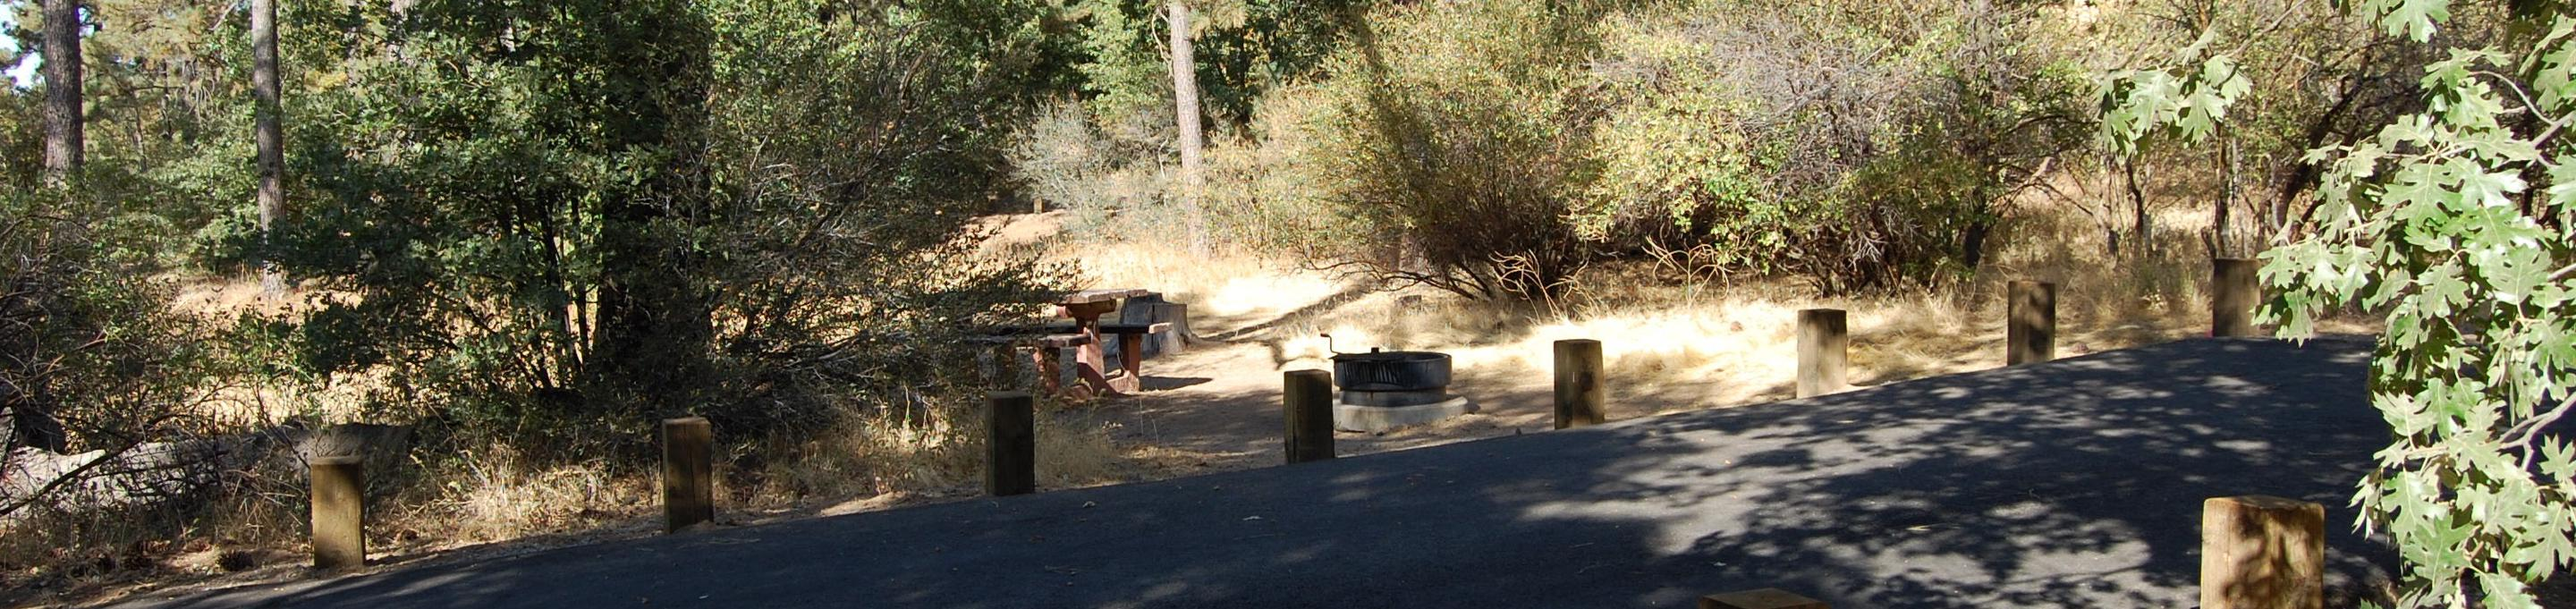 Campsite #43 Laguna Mountain Campground